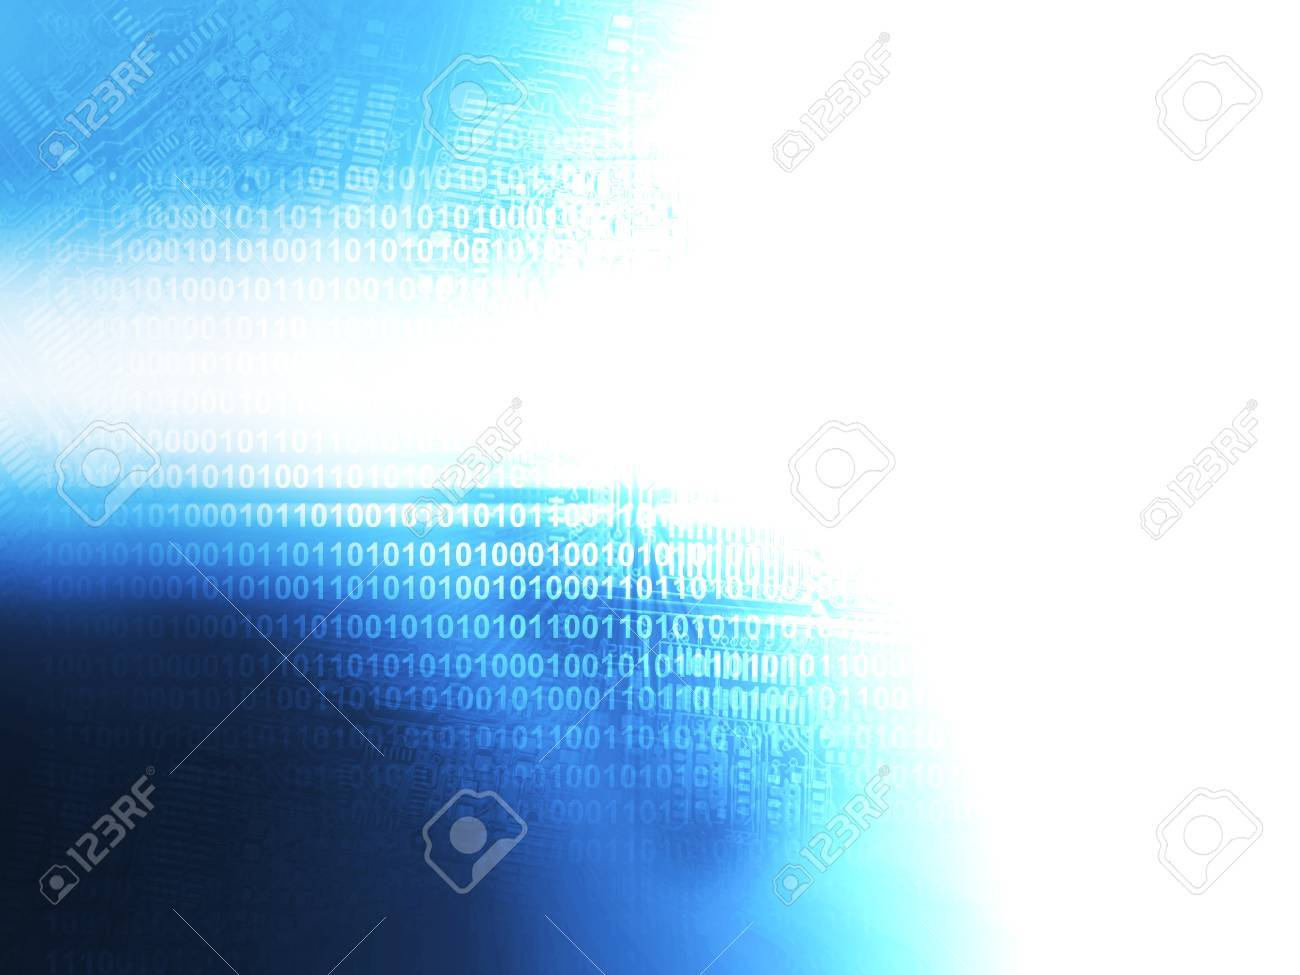 Source code technology background - 14976954